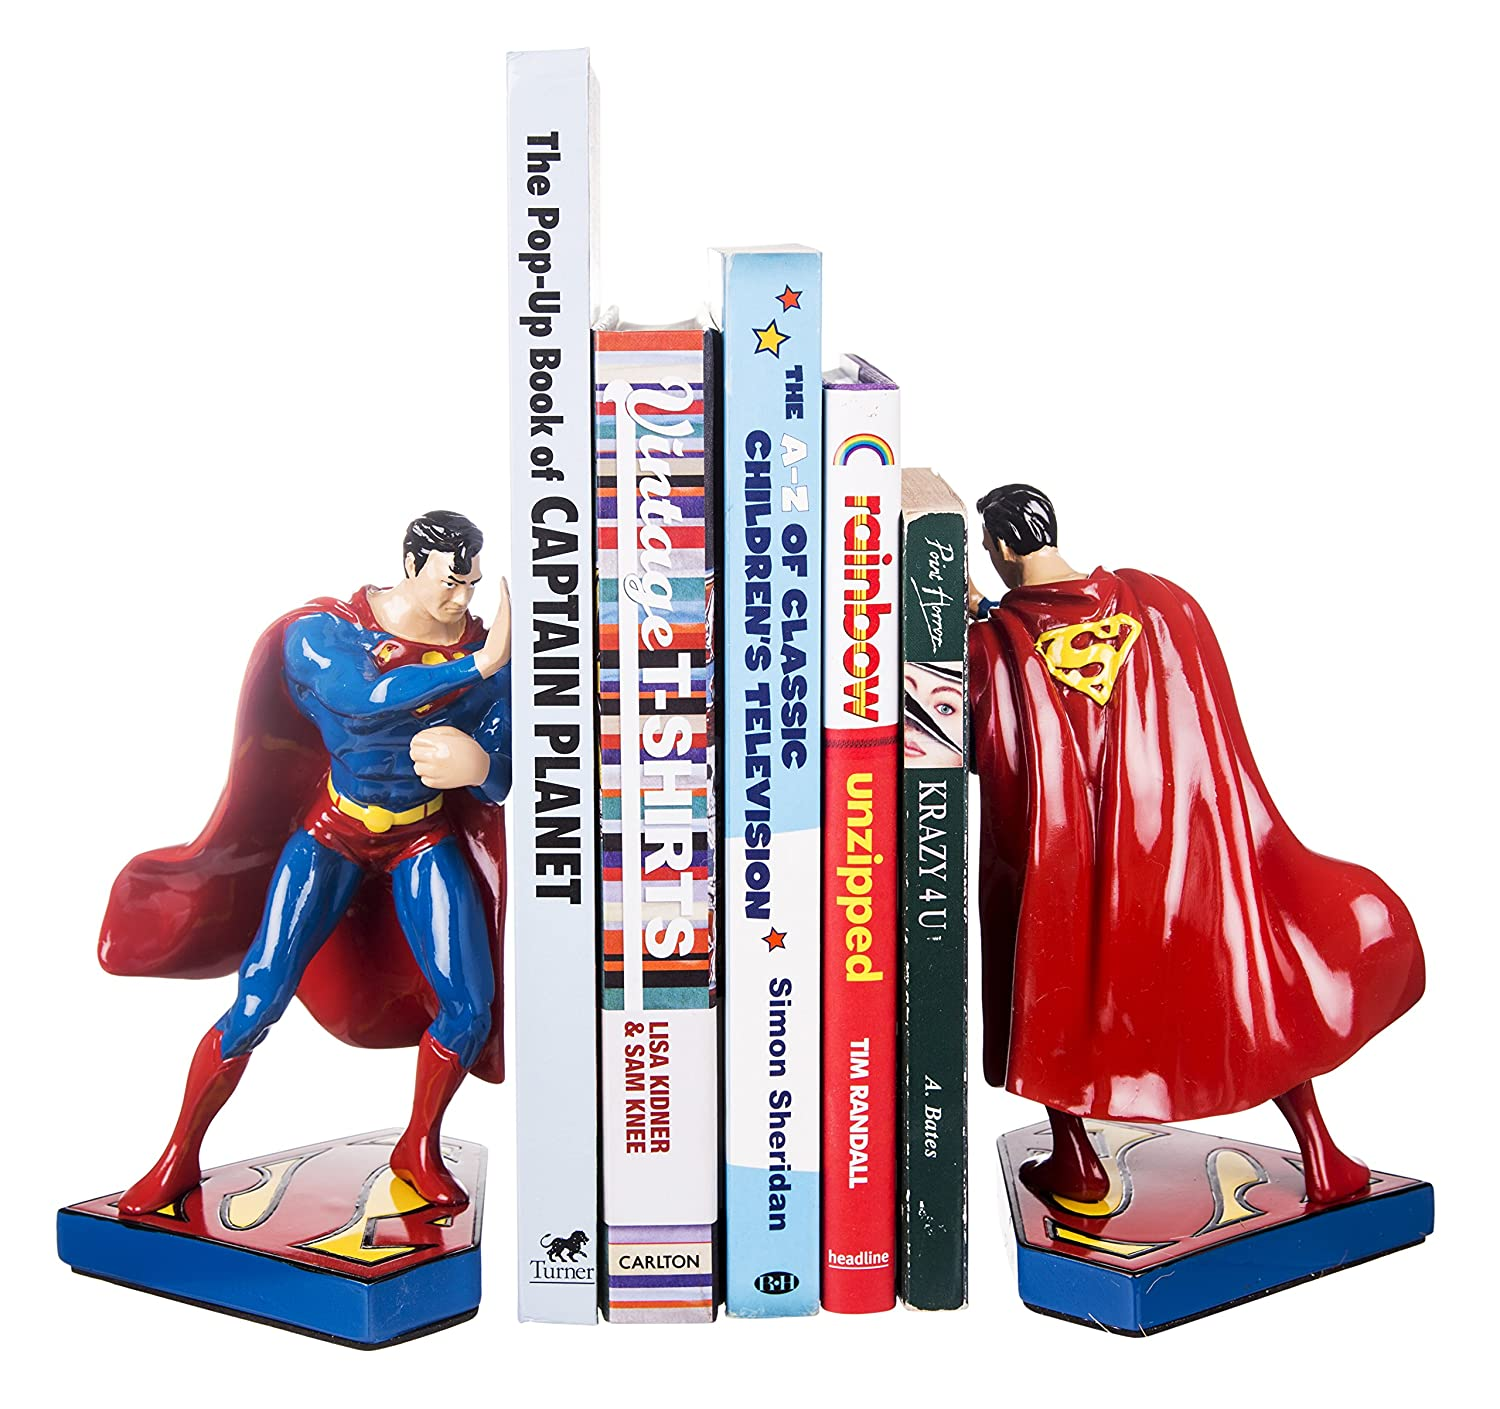 Half Moon Bay DC Comics Superman Figura sujetalibros 3633